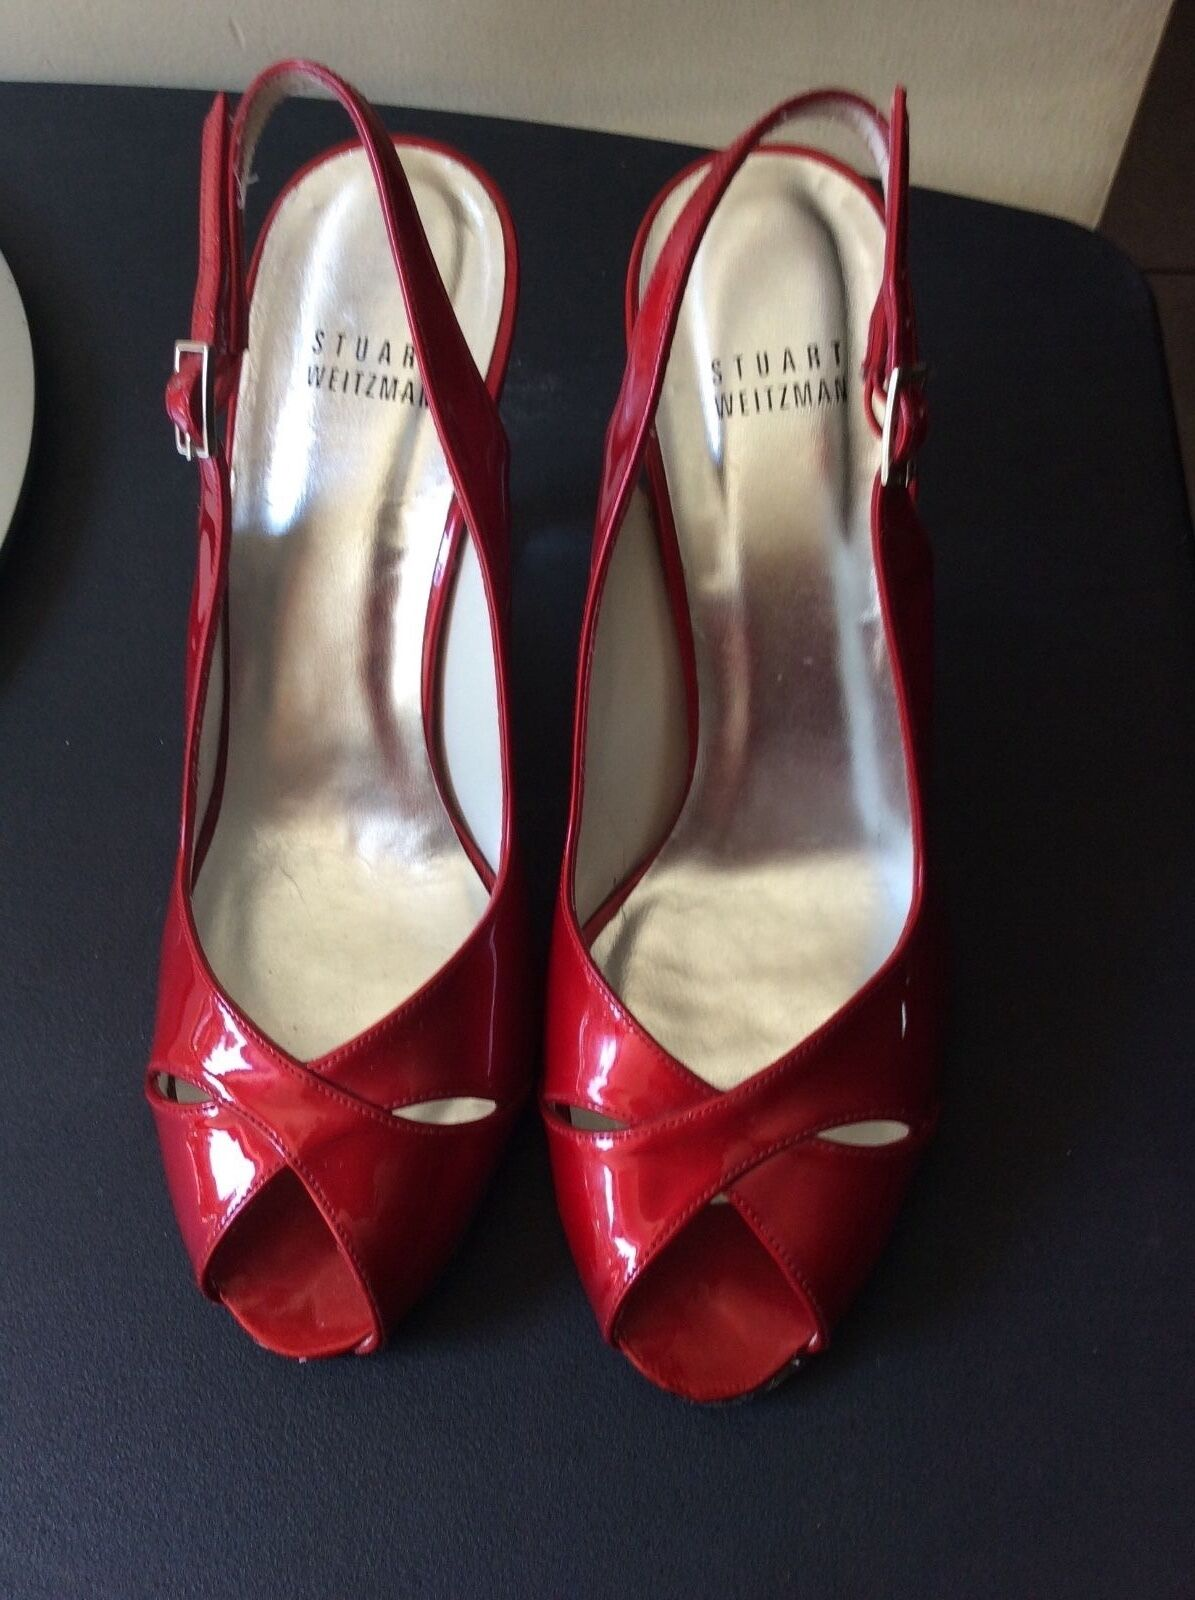 Stuart Weitzman Red Patent Leather Clear Wedge Wedge Clear Slingback Heel size 8 f186bd